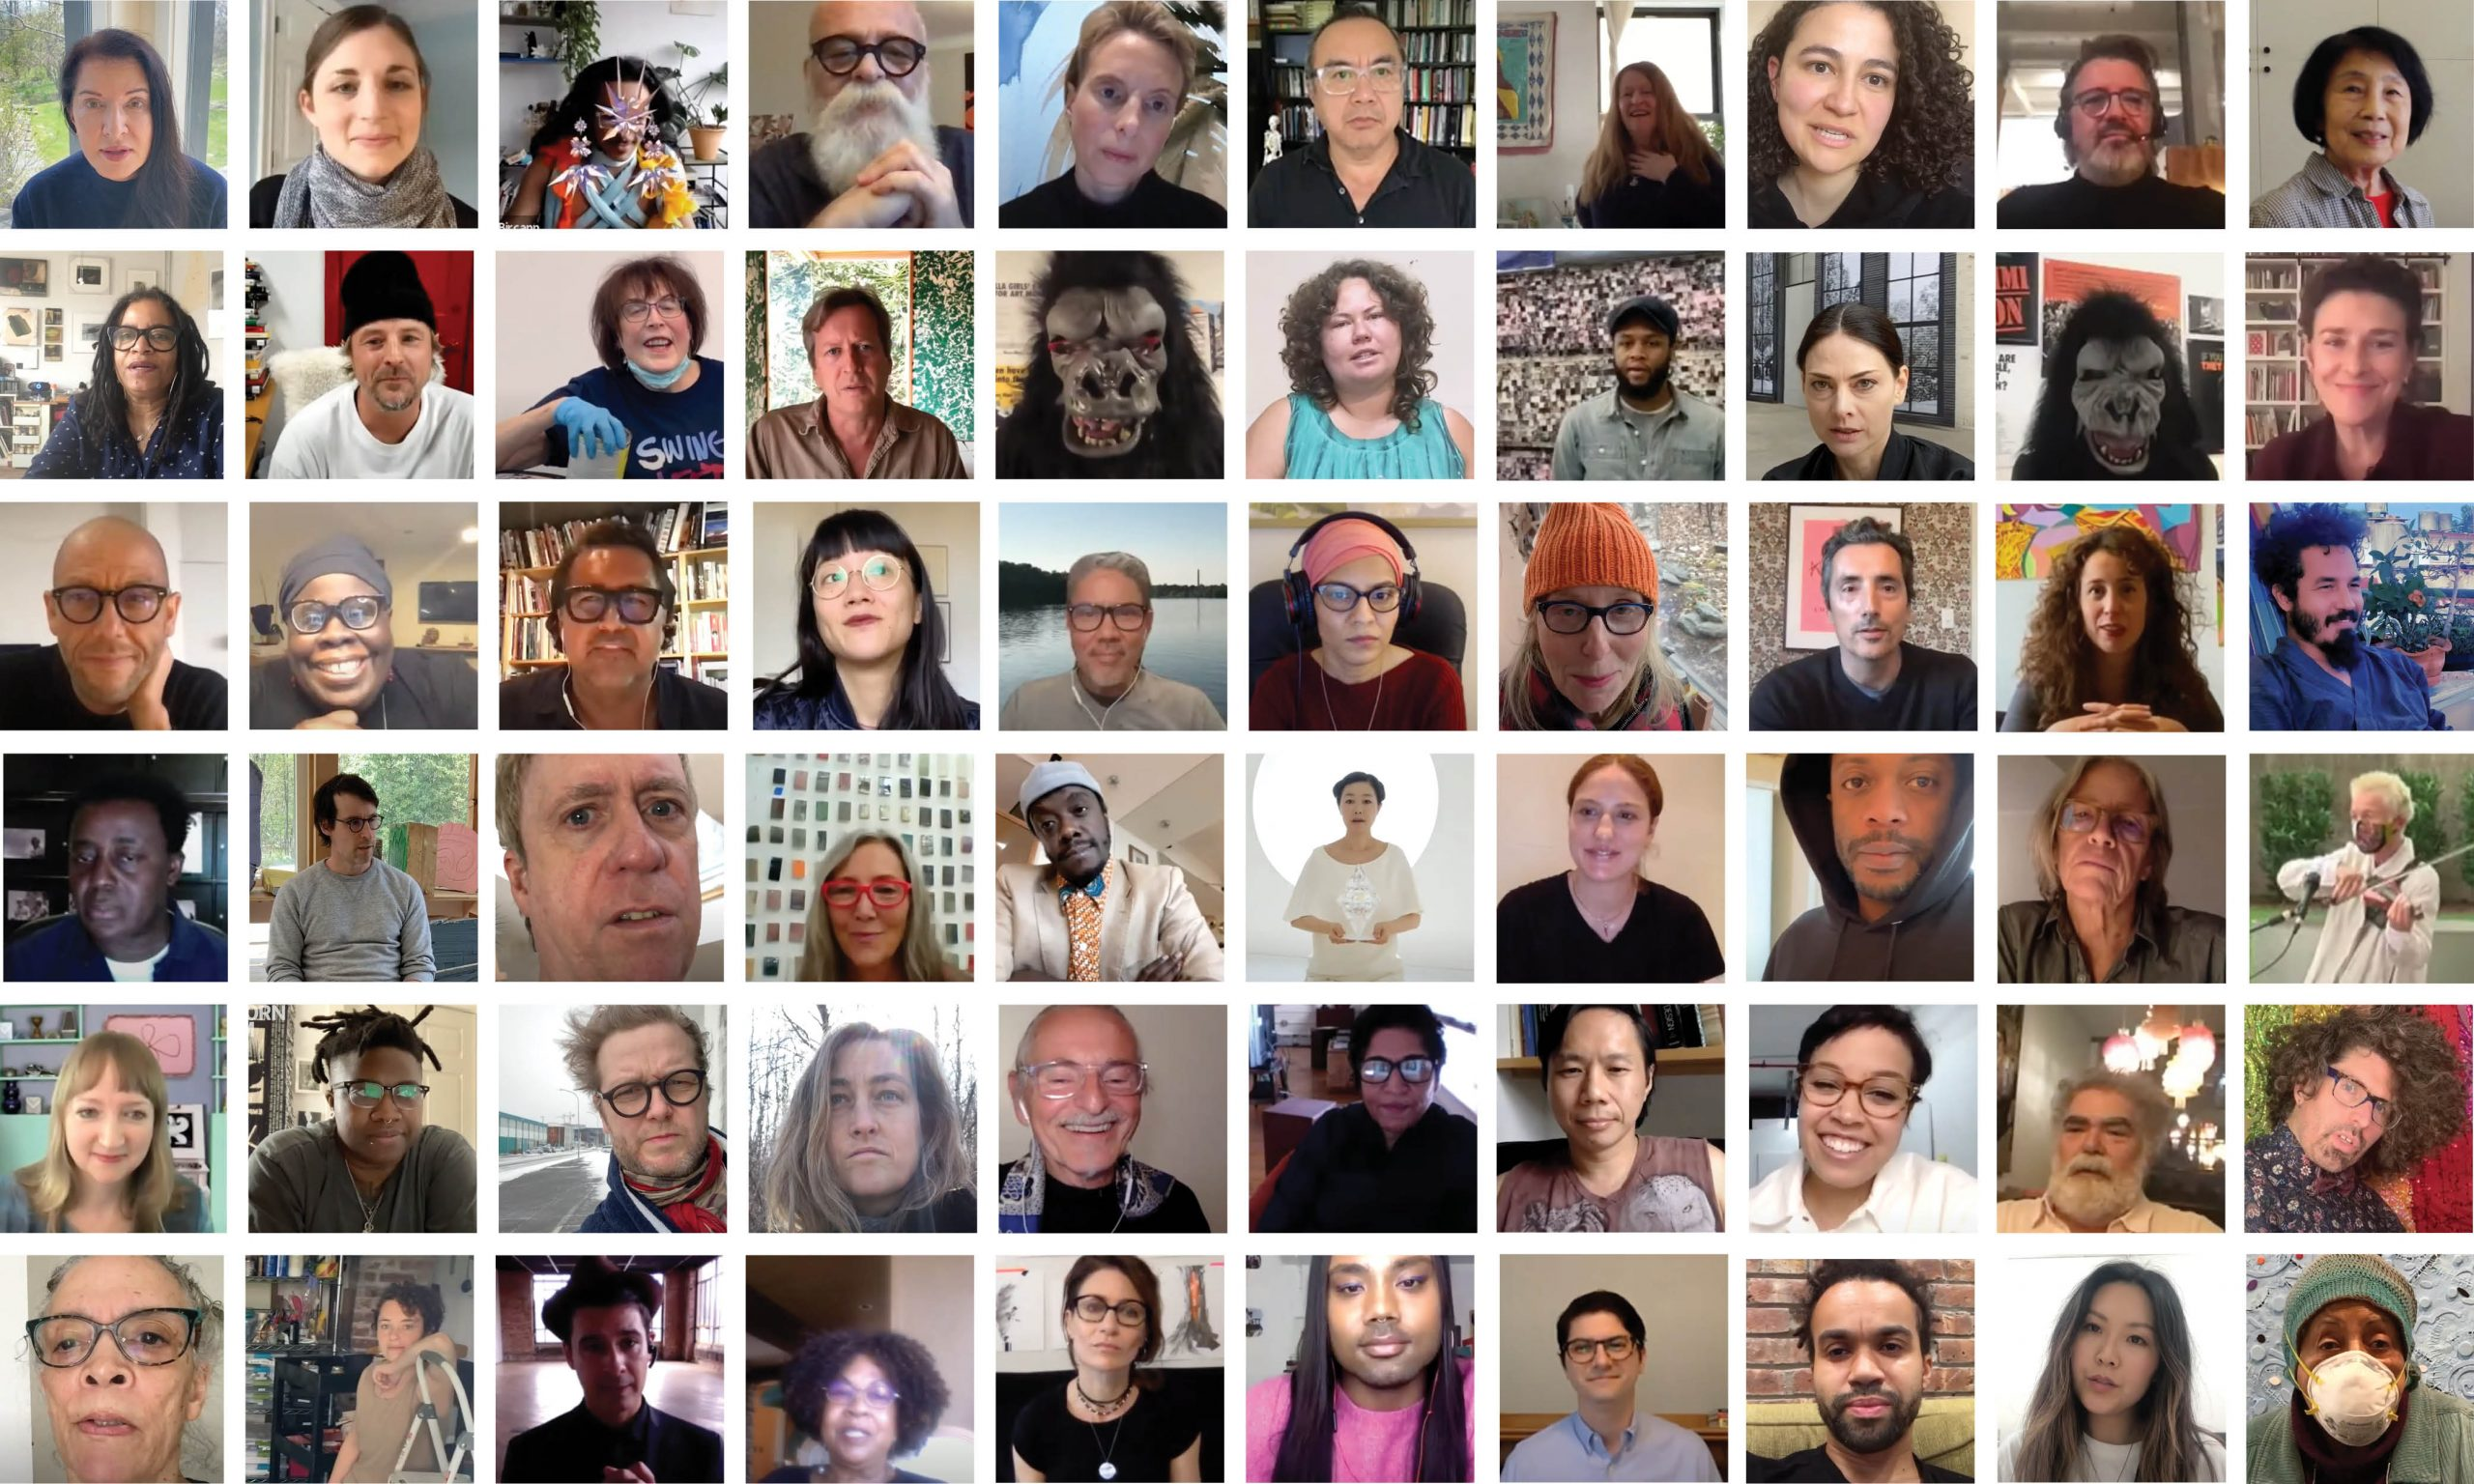 Grid of faces of artists